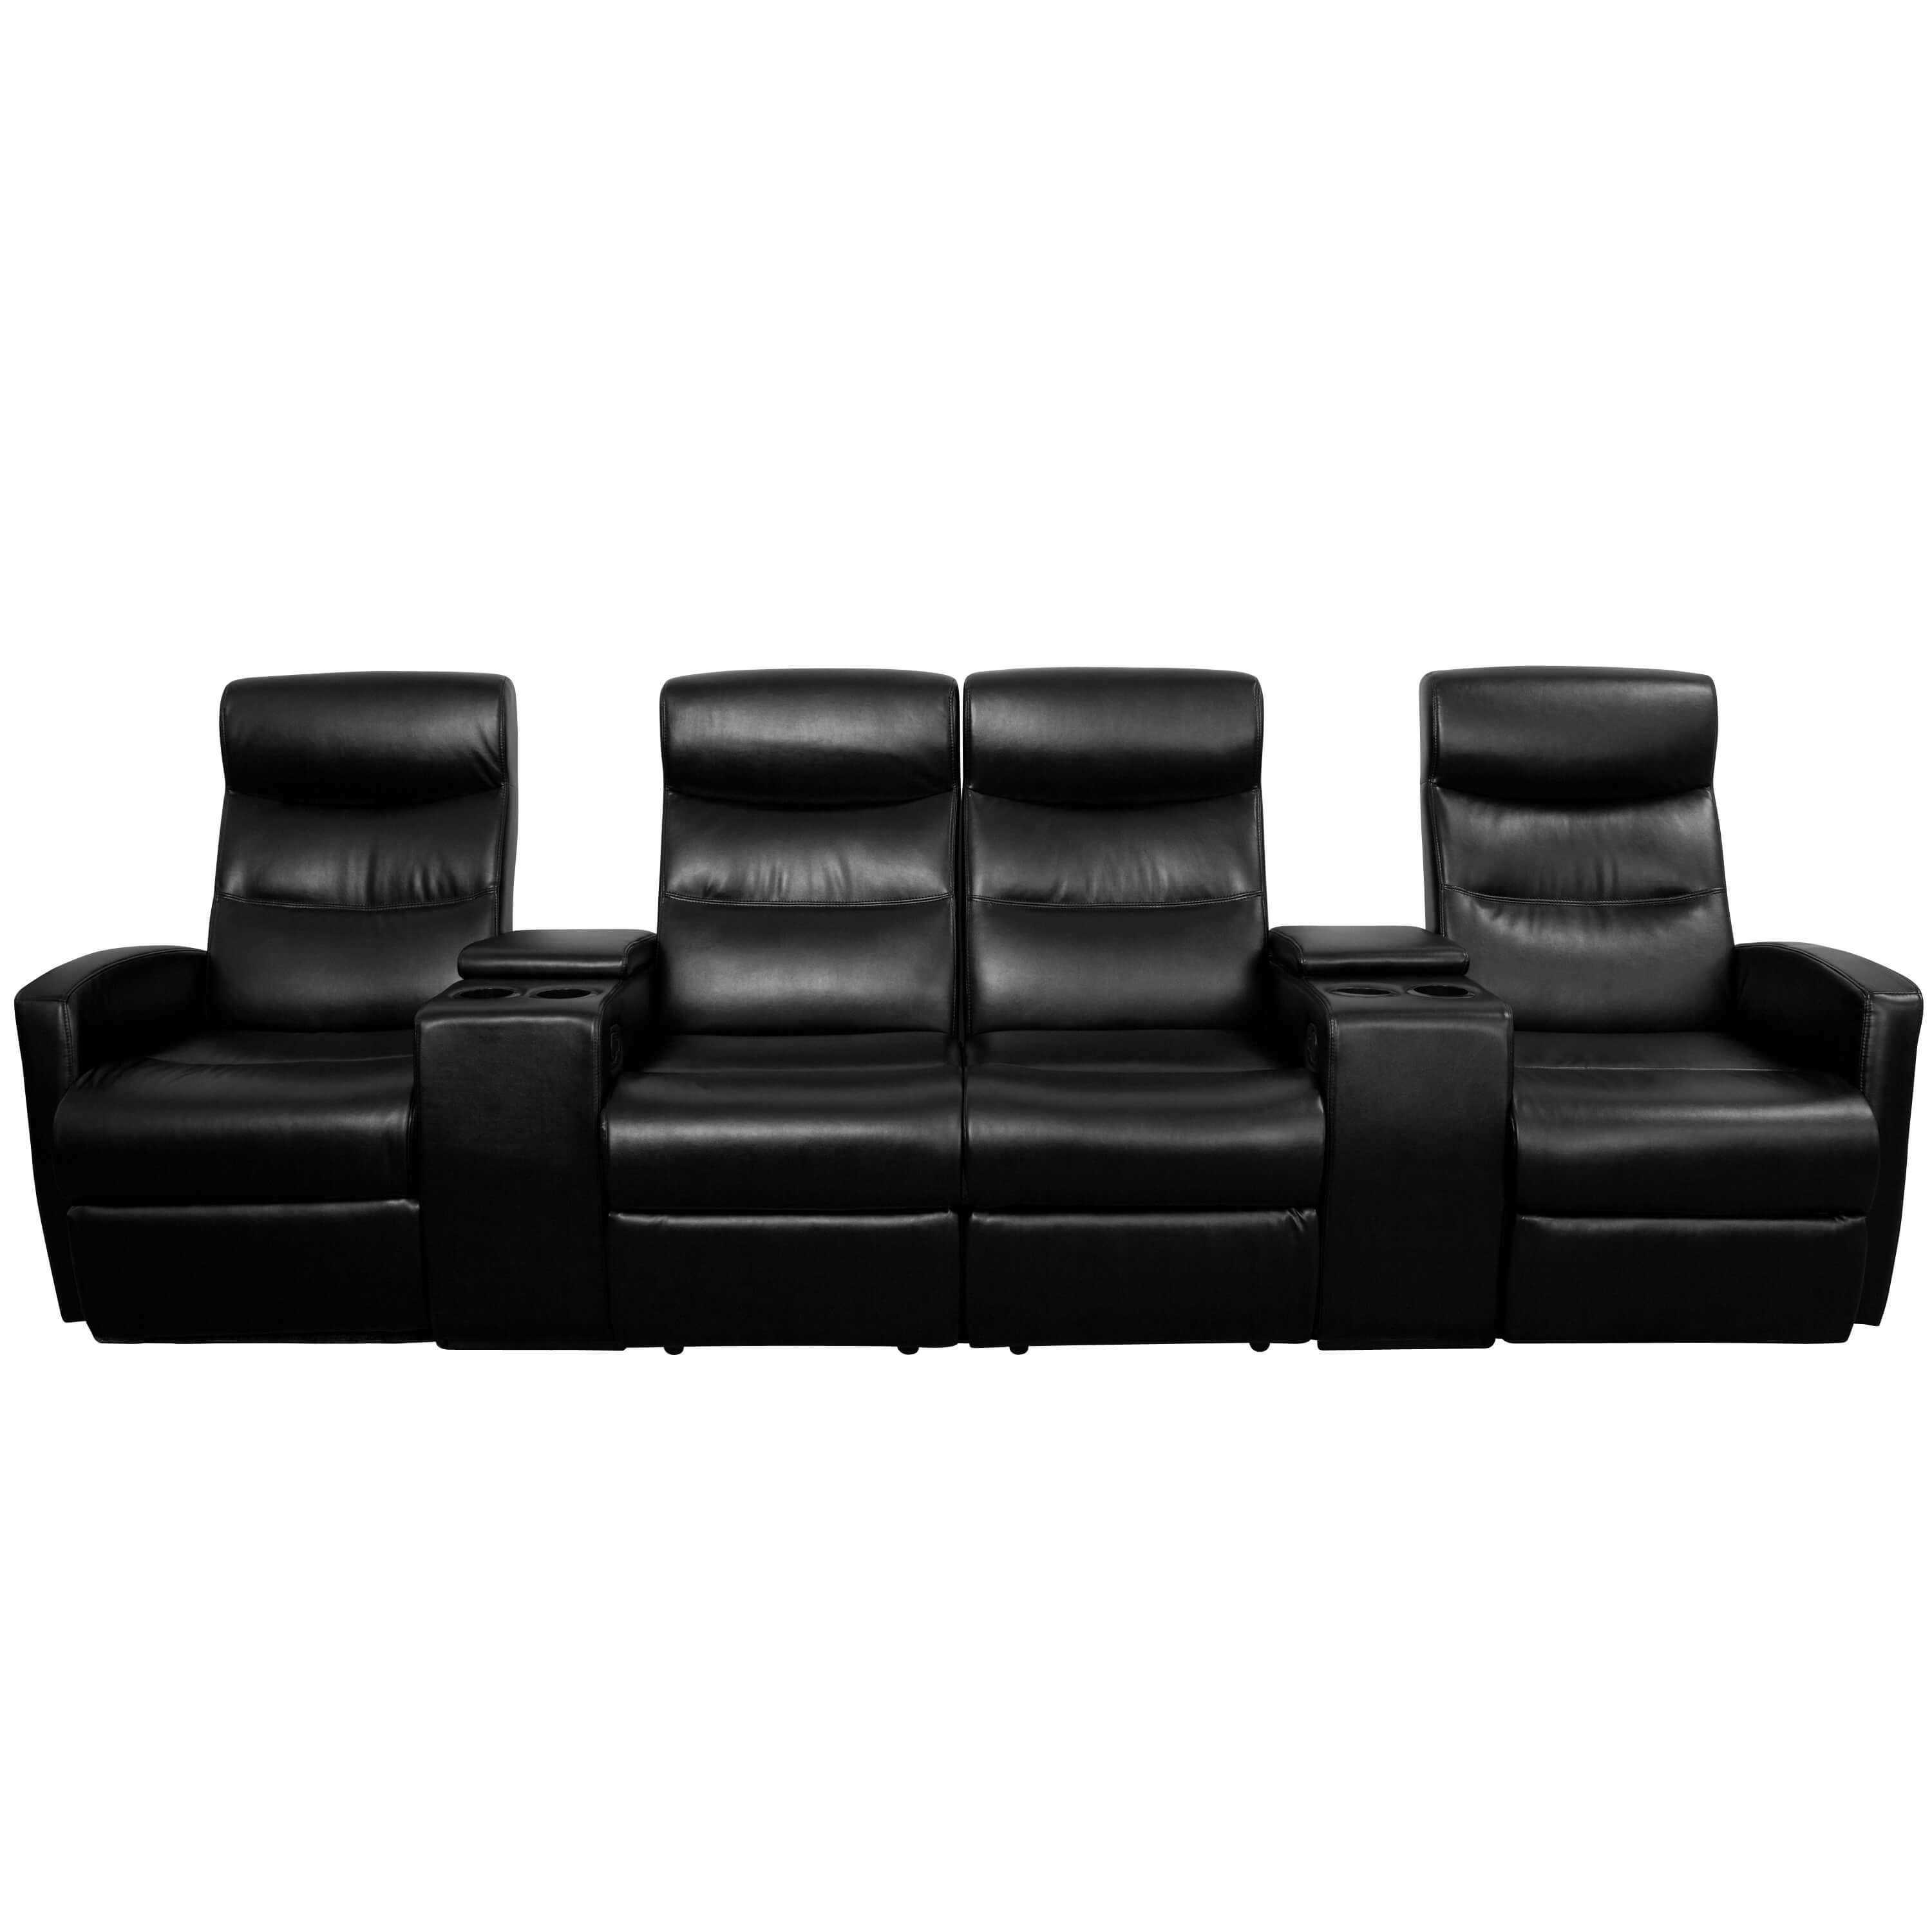 Home theatre seating 4 seater recliner sofa